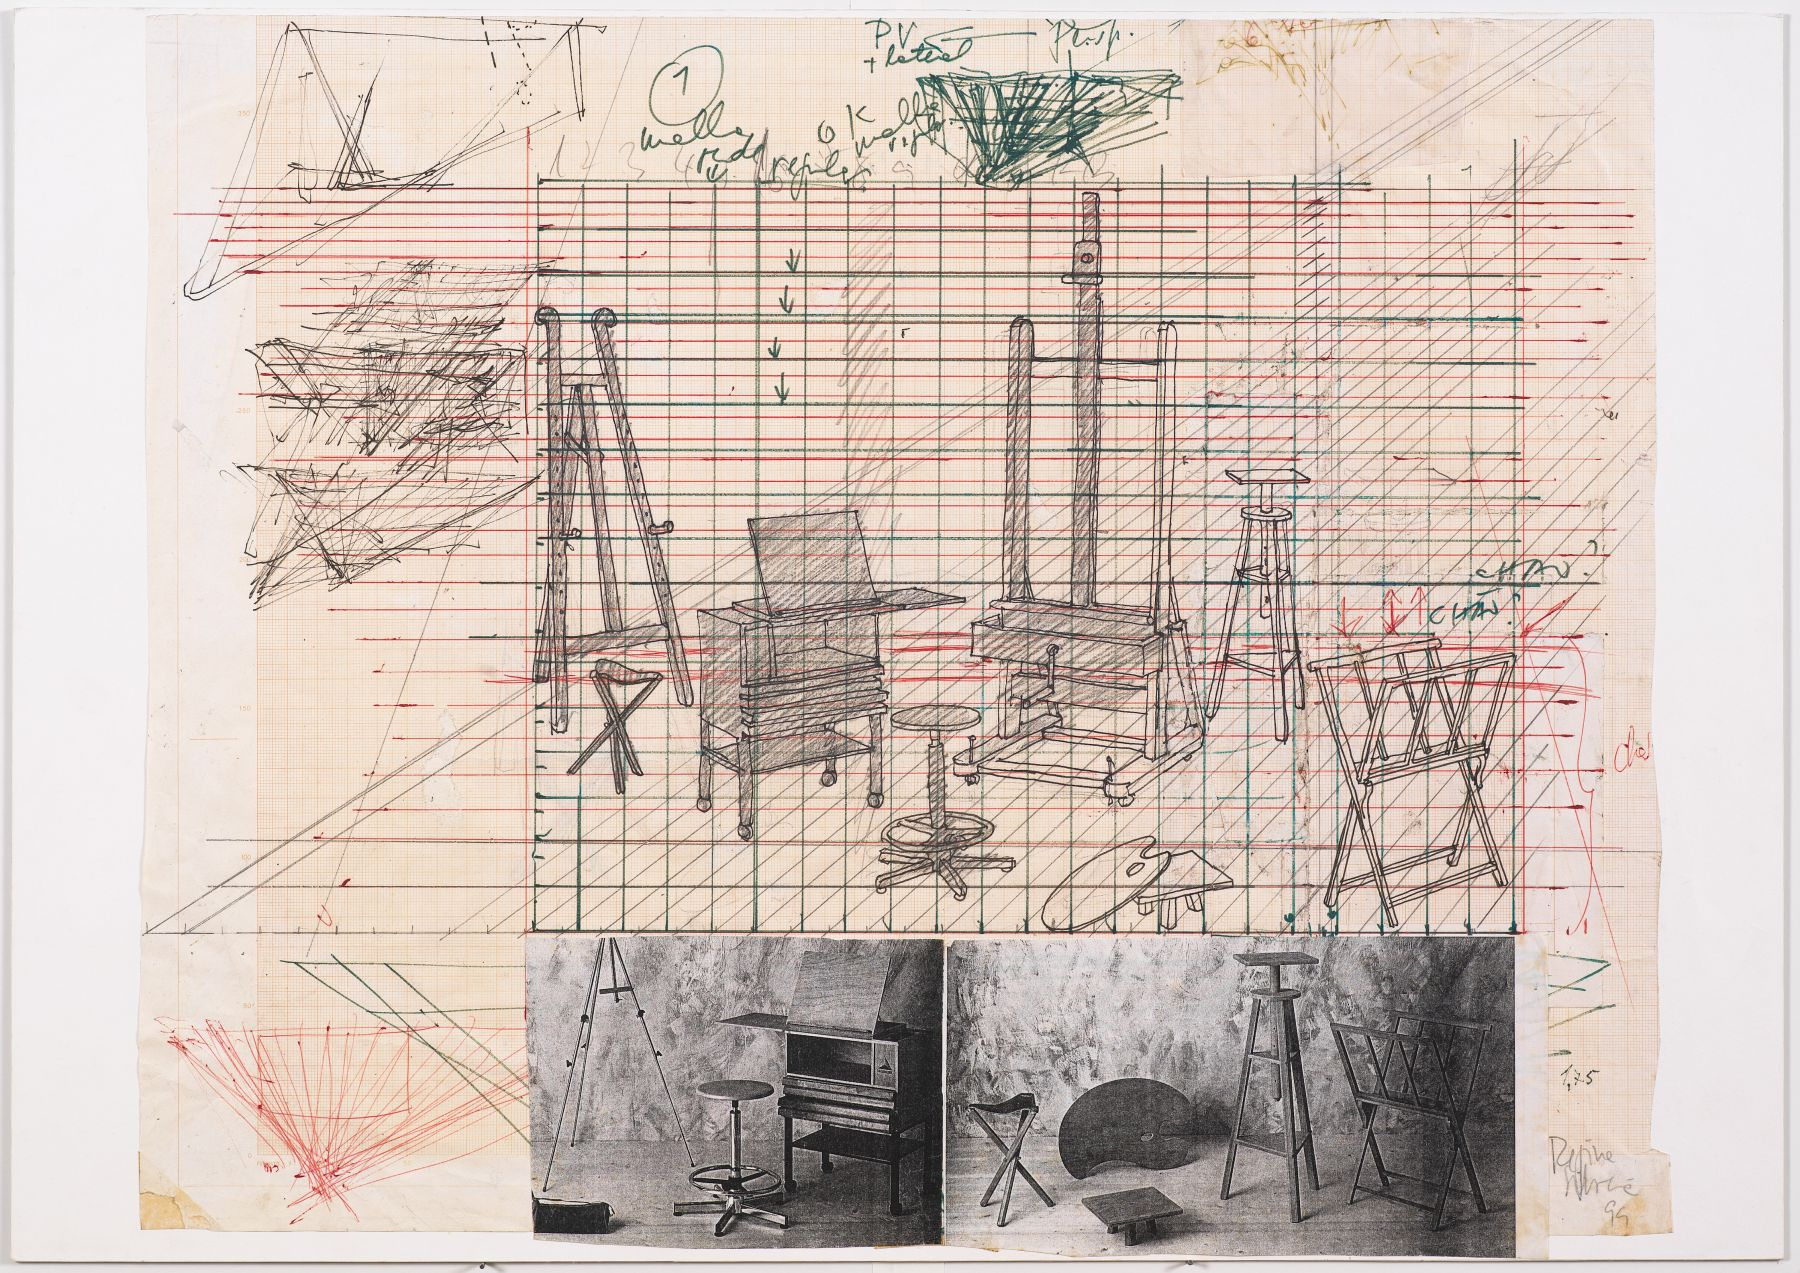 Working drawing for Desaparência (Estúdio) 1, 1999